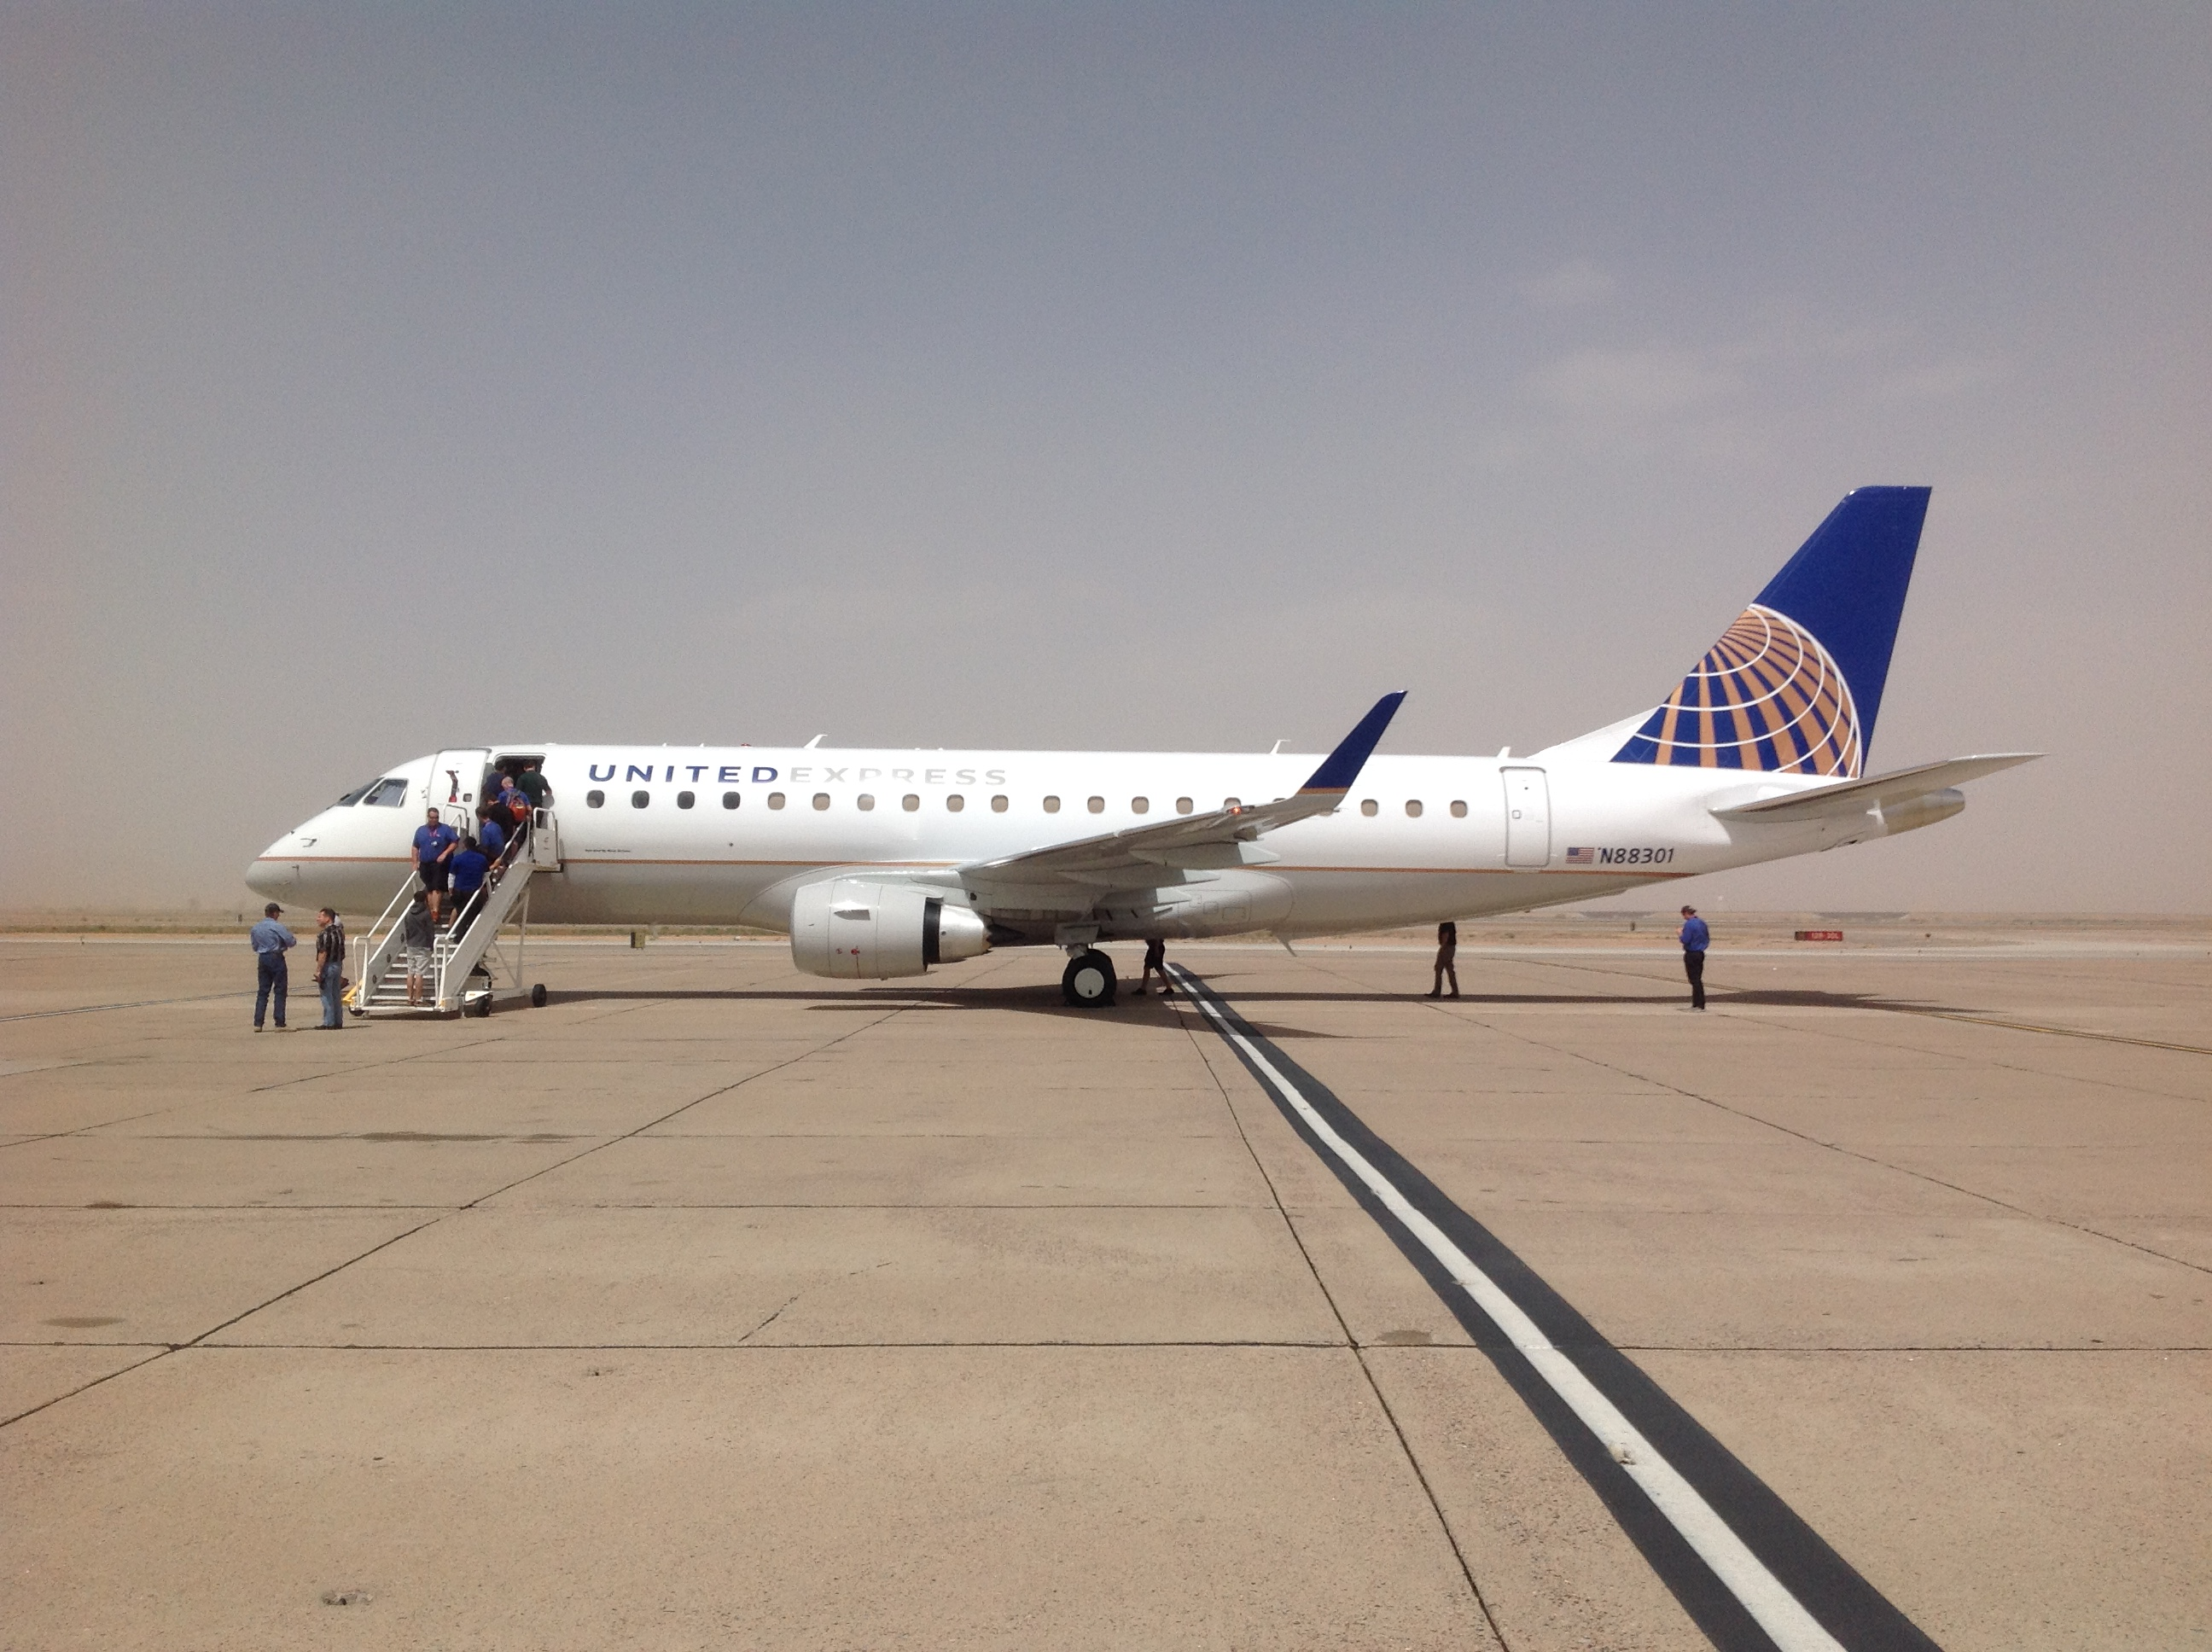 Mesa Airlines Standardaero Signs New Contracts With Mesa Airlines To Support Its